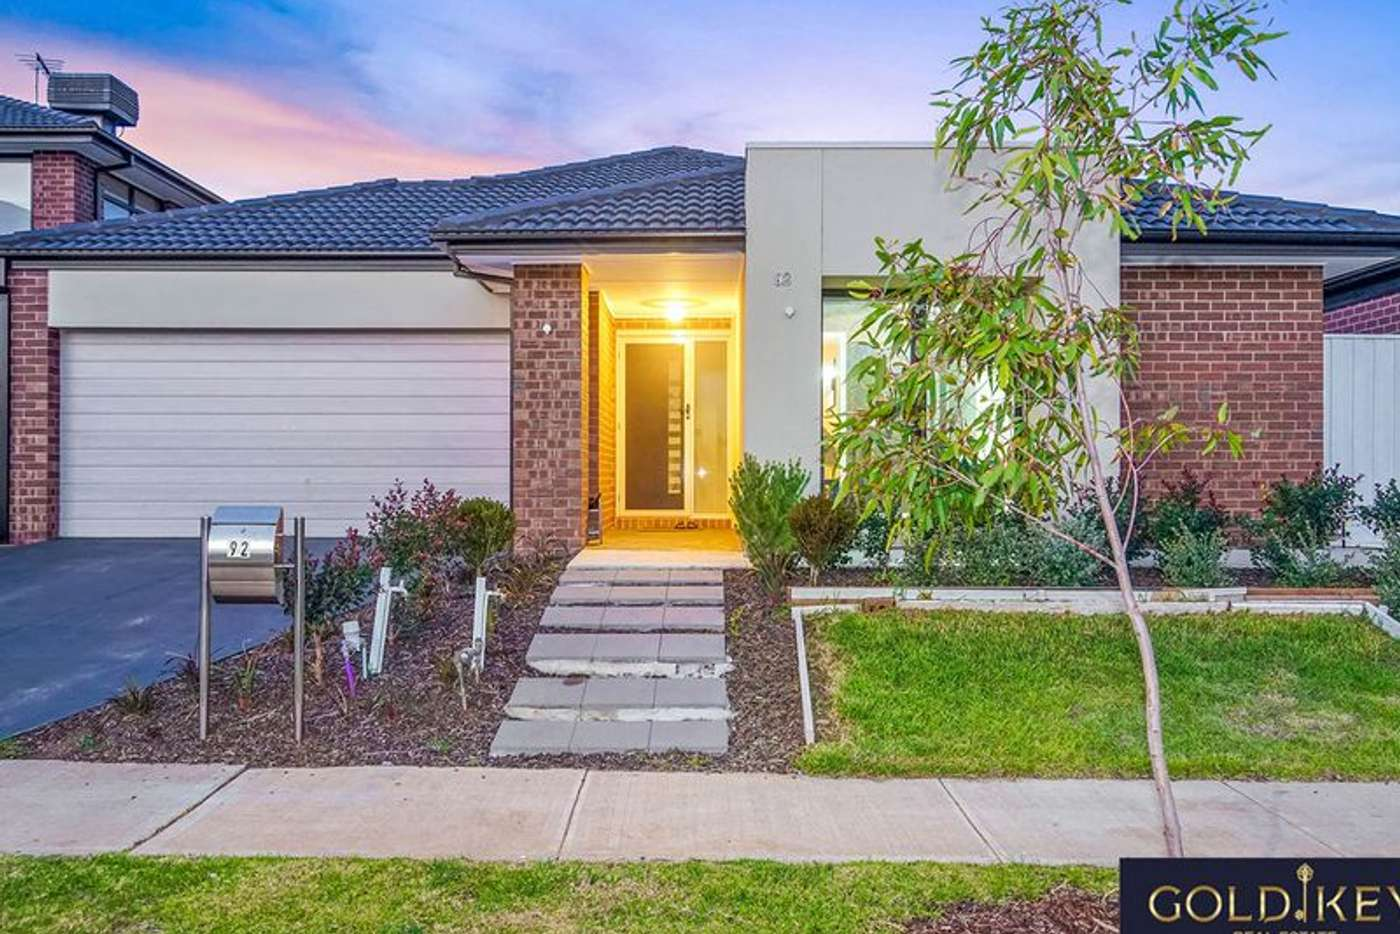 Main view of Homely house listing, 92 Bandicoot Loop, Tarneit VIC 3029